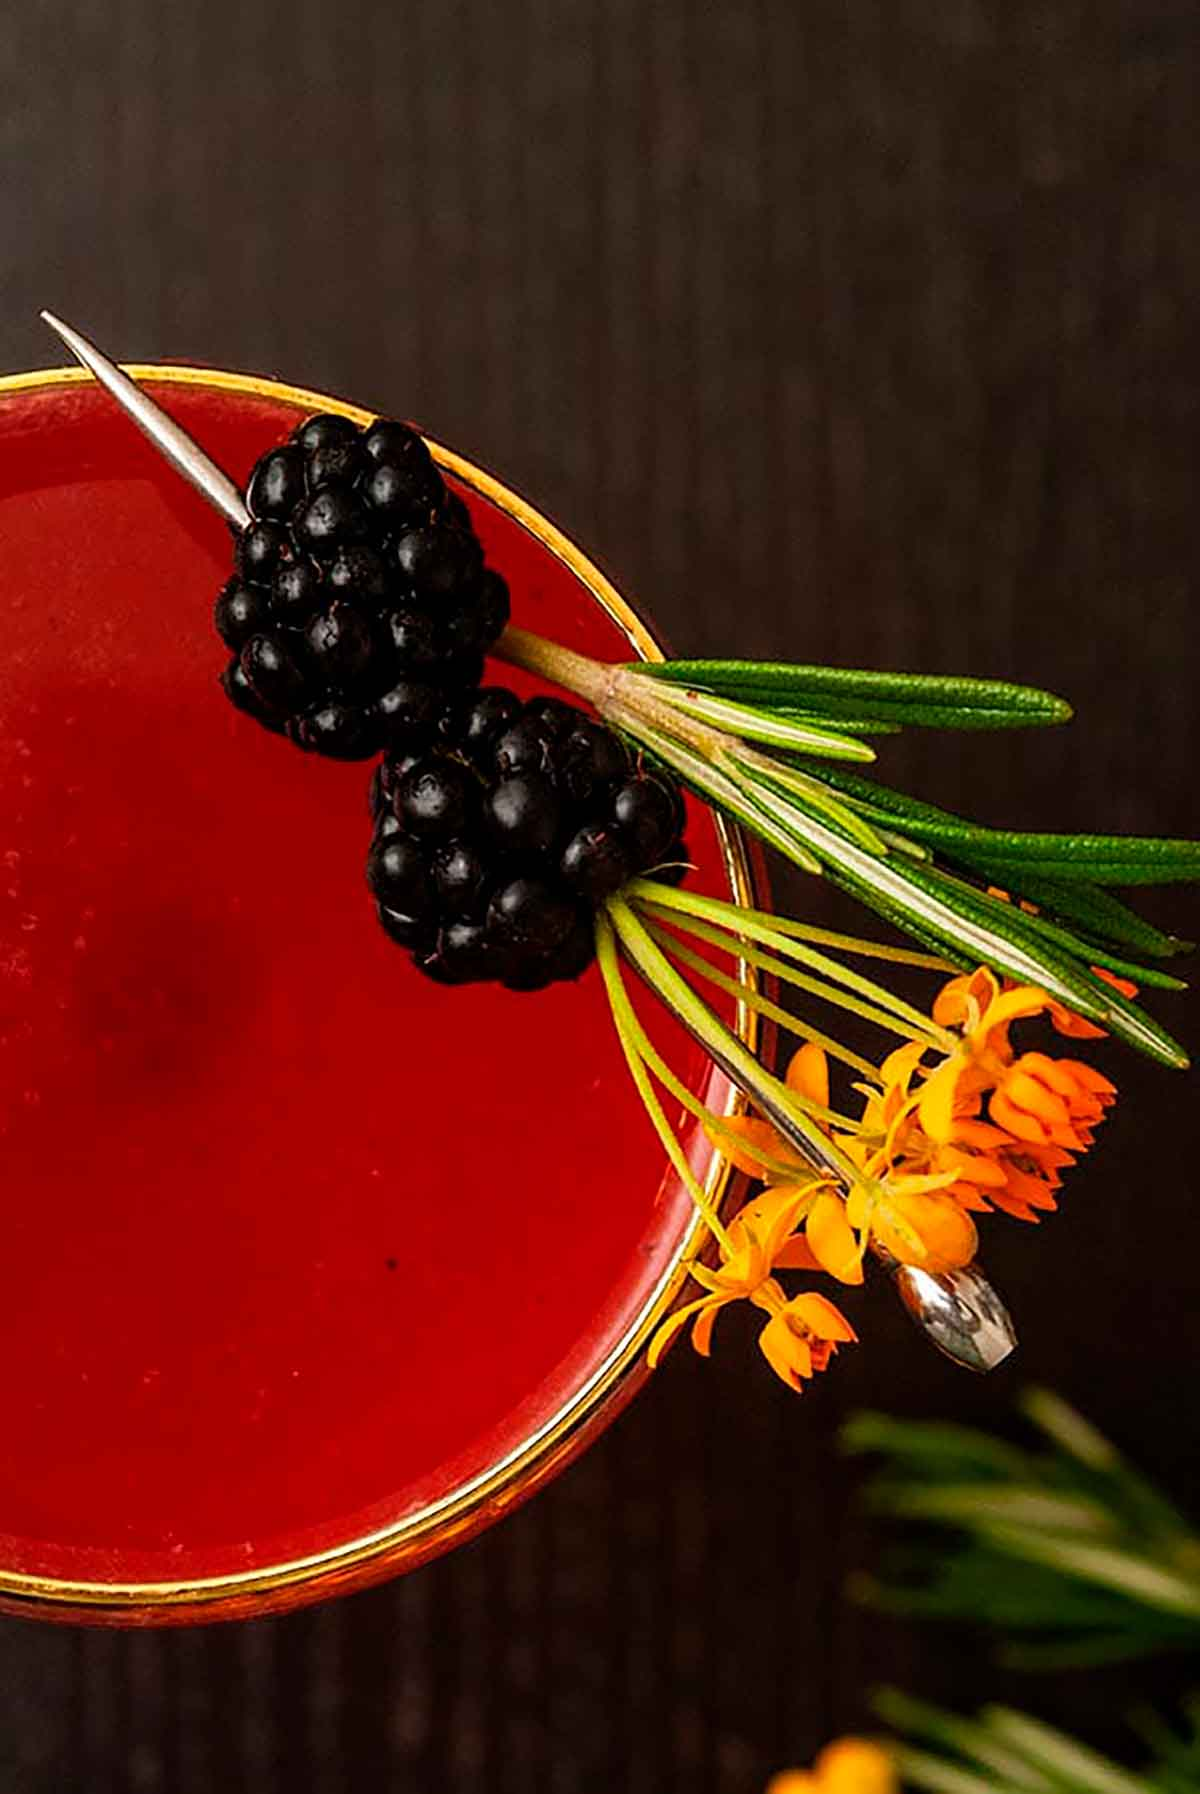 The top of a cocktail on a wood table, garnished with flowers and blackberries.